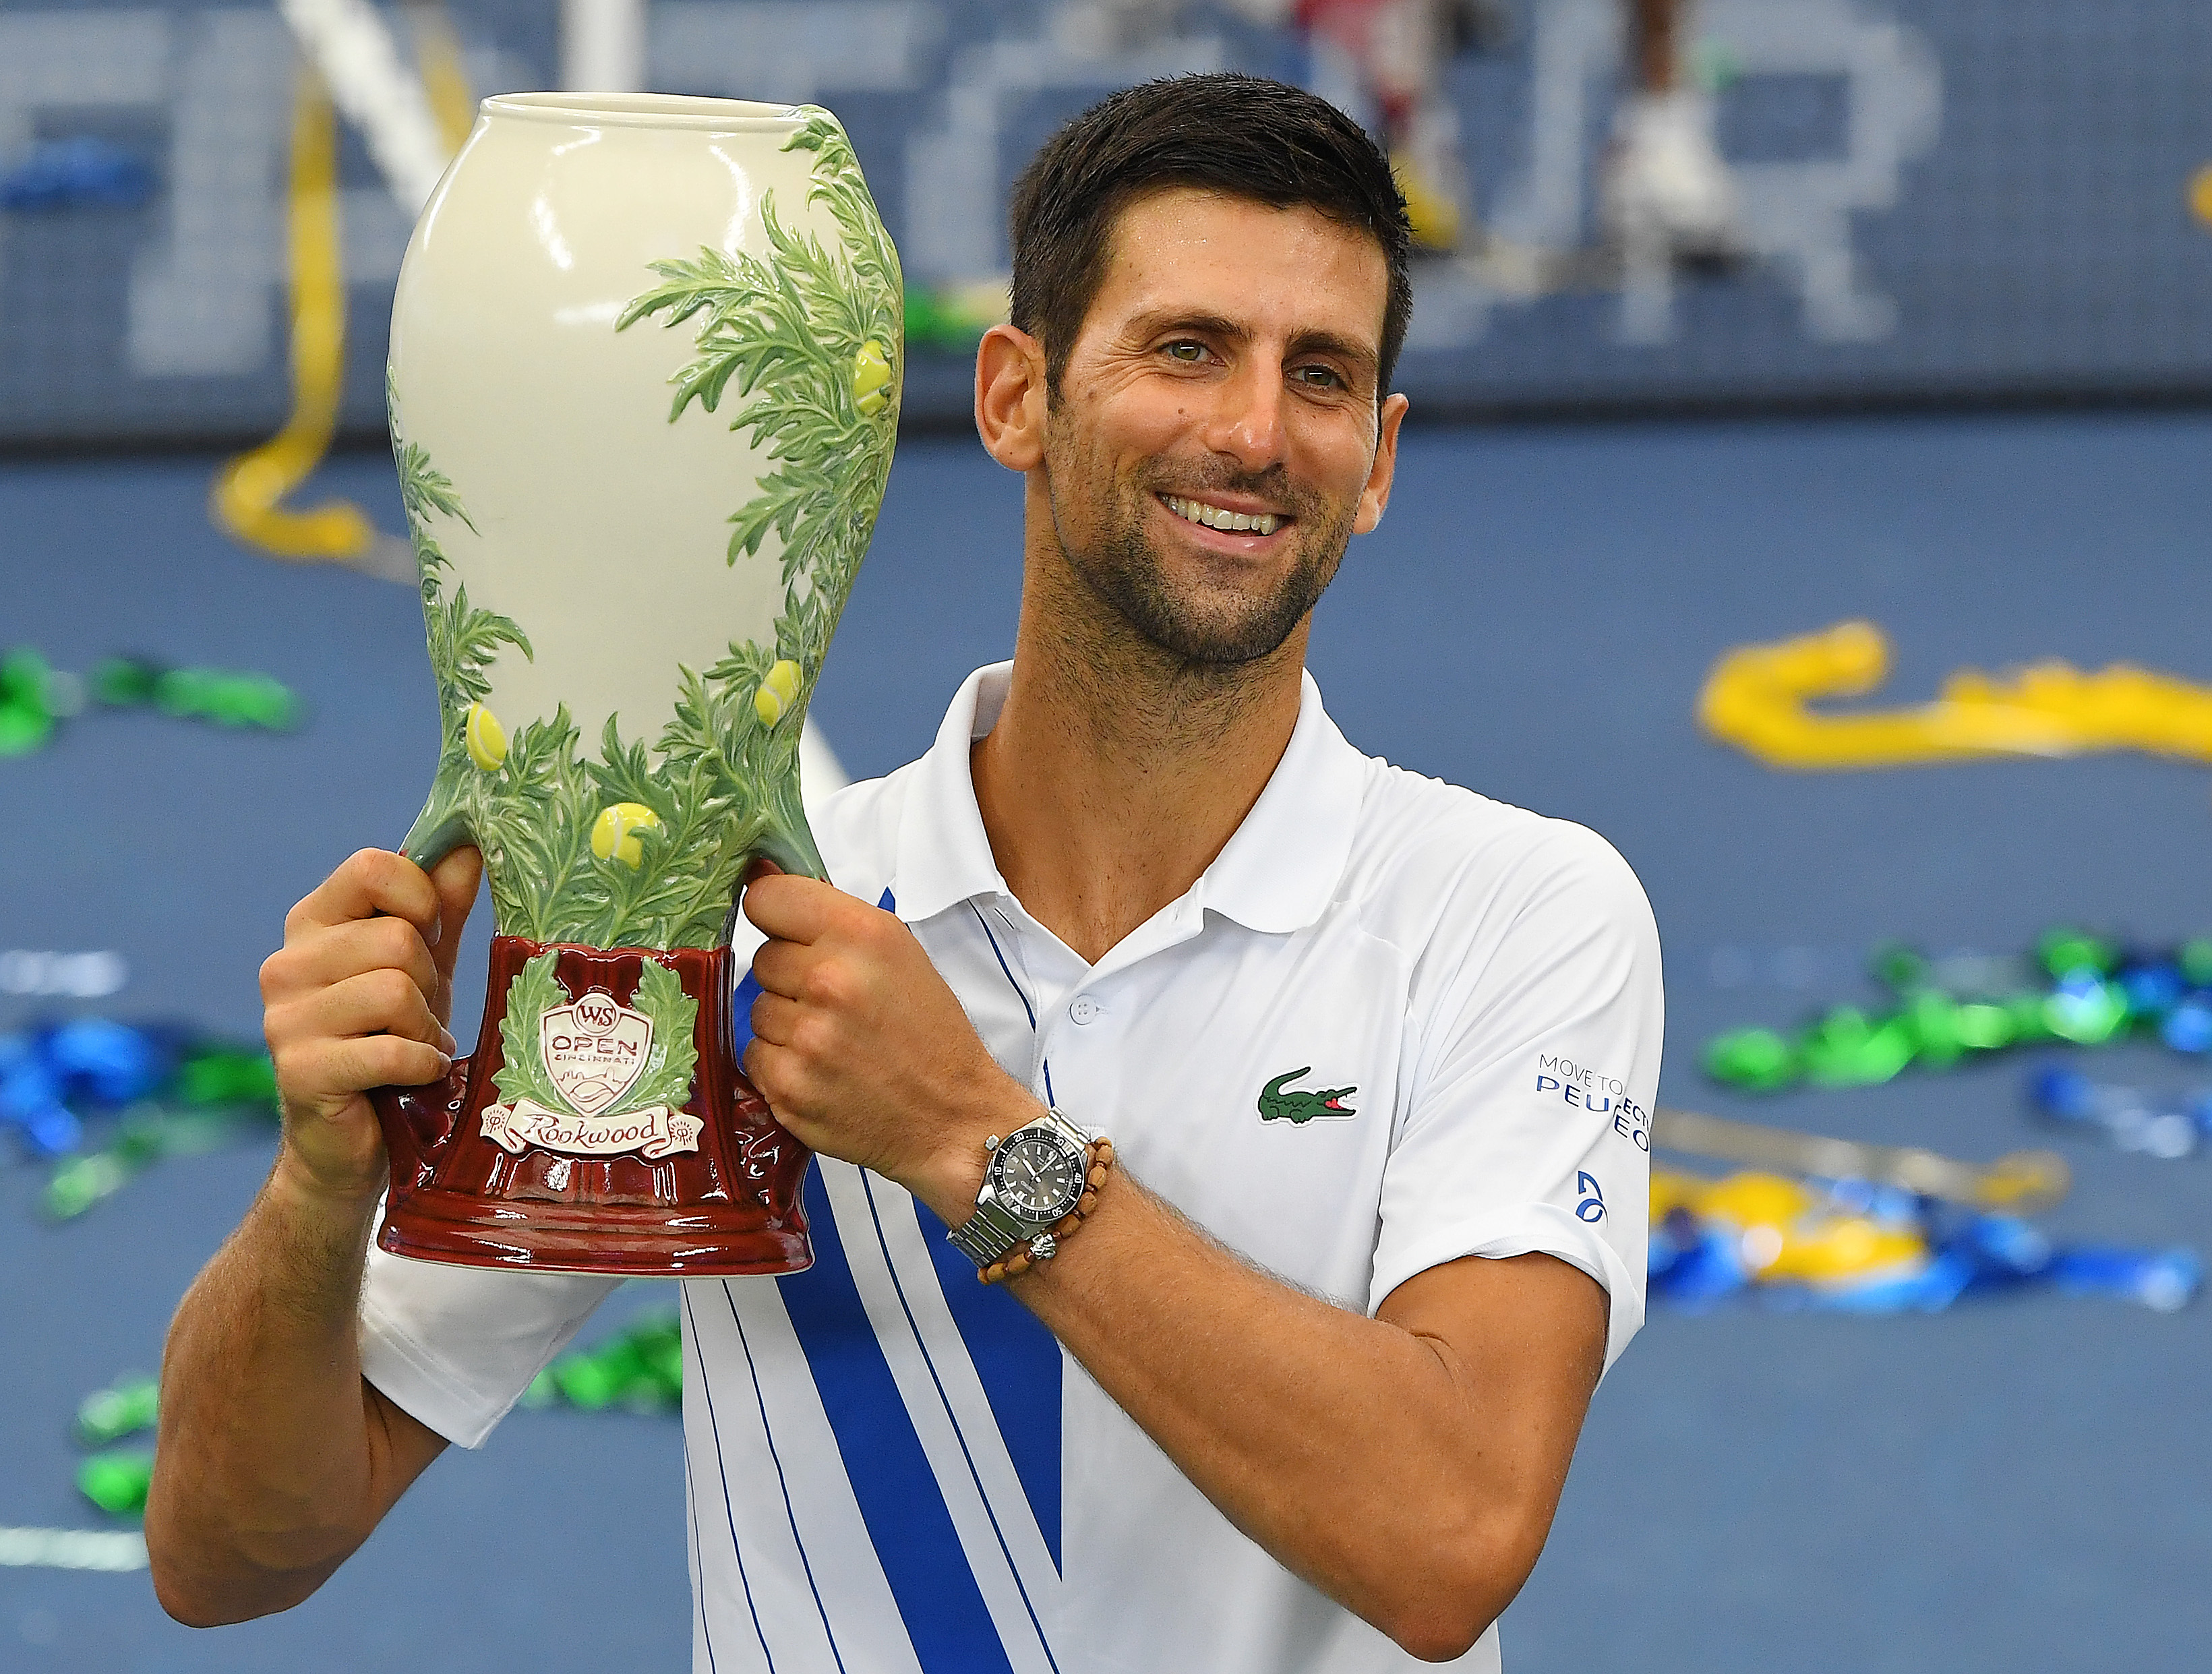 Mens champion Novak Djokovic (SRB) poses with the trophy following his win over Milos Raonic (CAN) in the Western & Southern Open at the USTA Billie Jean King National Tennis Center. Mandatory Credit: Robert Deutsch-USA TODAY Sports